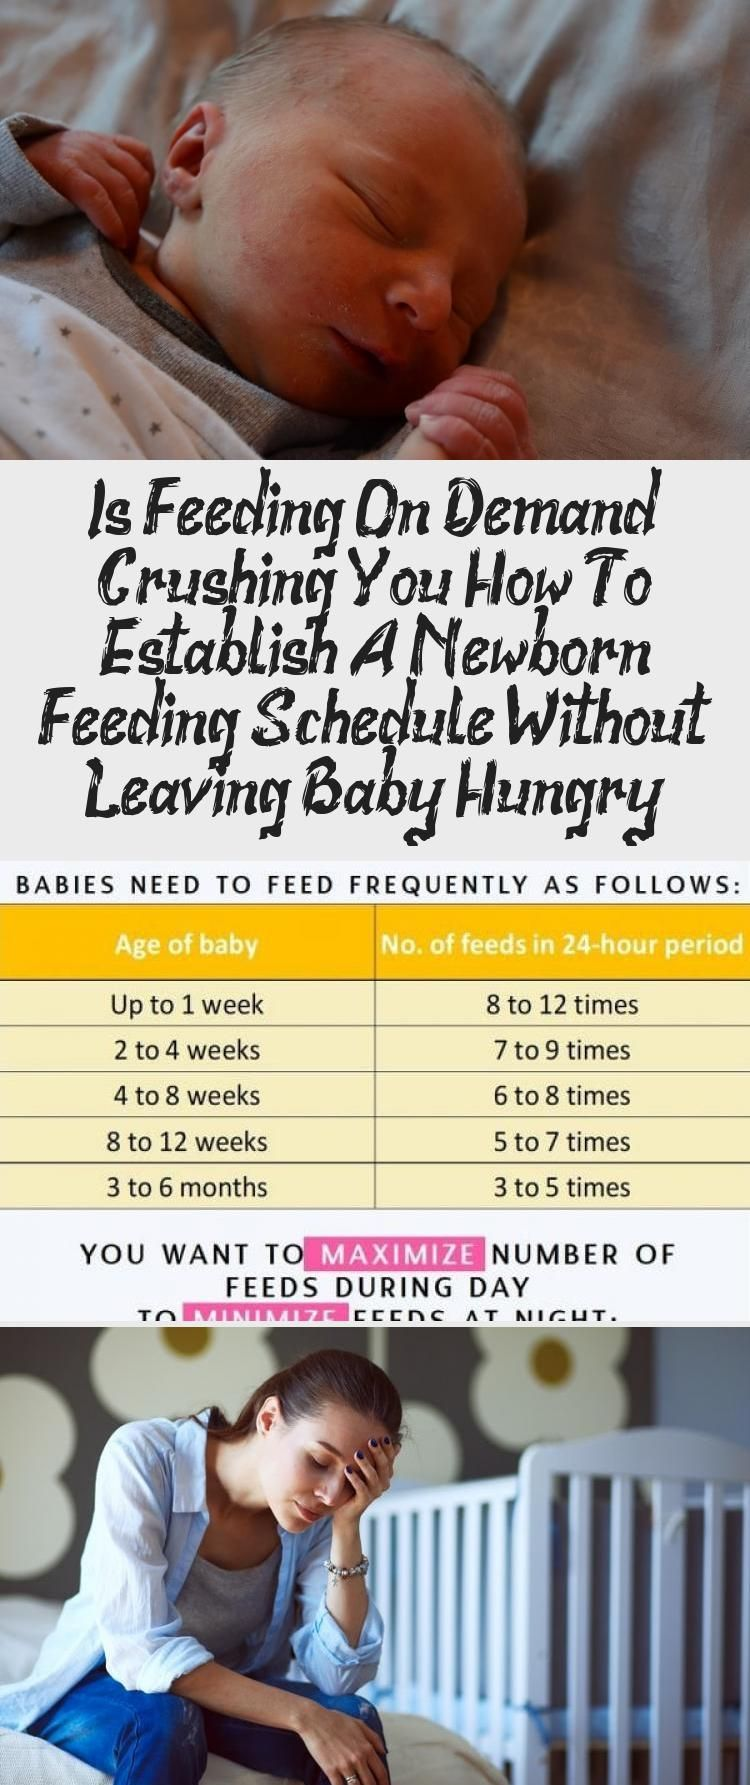 Is Feeding On Demand Crushing You? How To Establish A Newborn Feeding Schedule Without Leaving Baby...